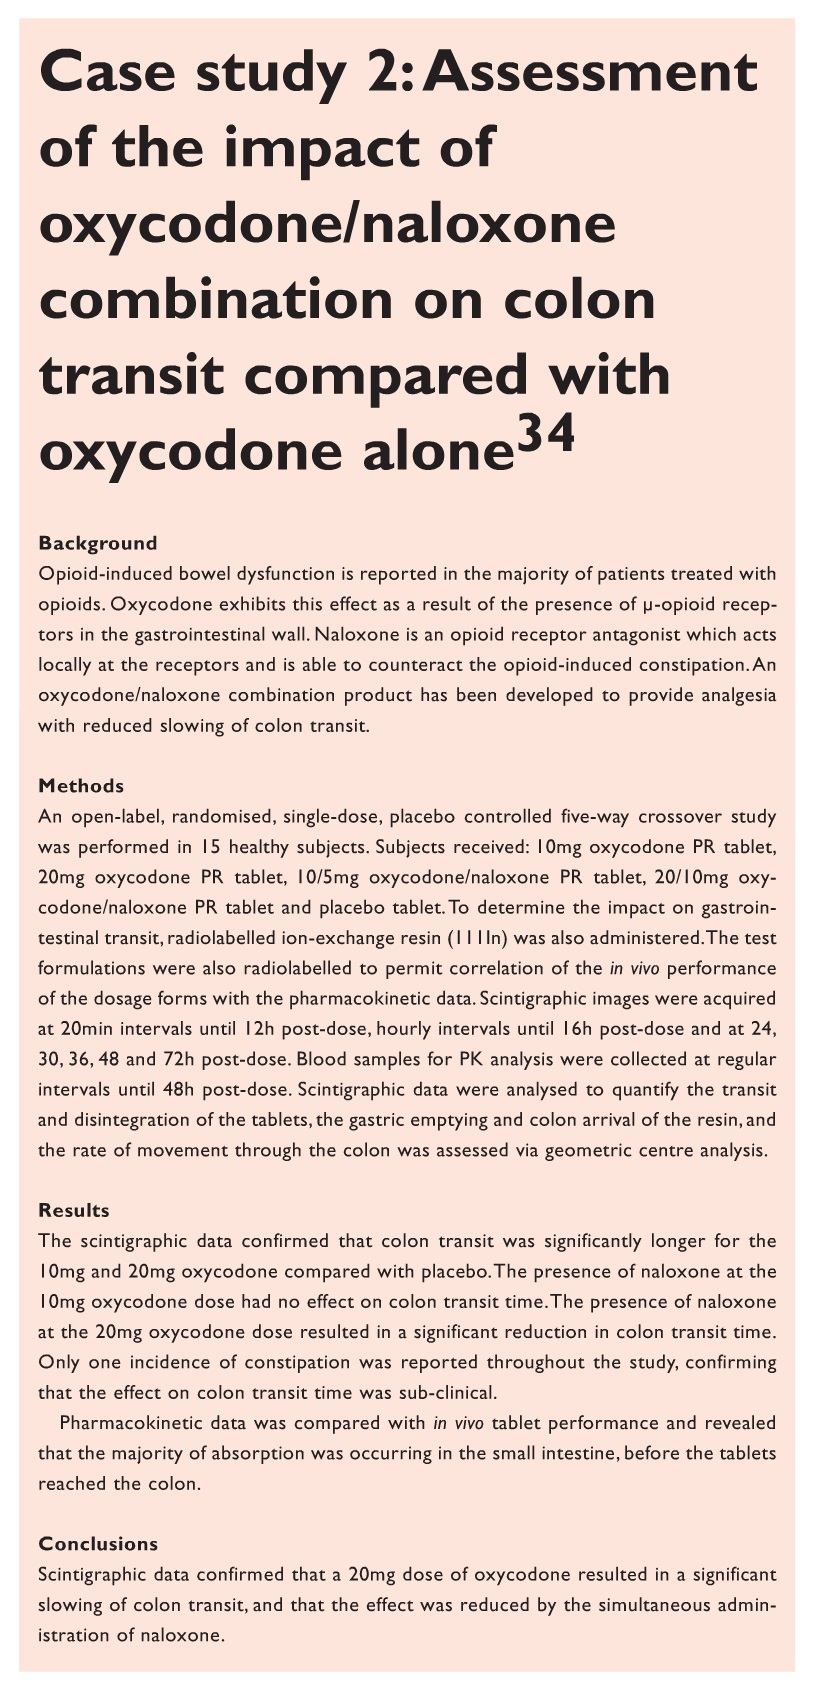 Case Study 2 Assessment of the impact of oxycodone/naloxone combination on colon transit compared with oxycodone alone